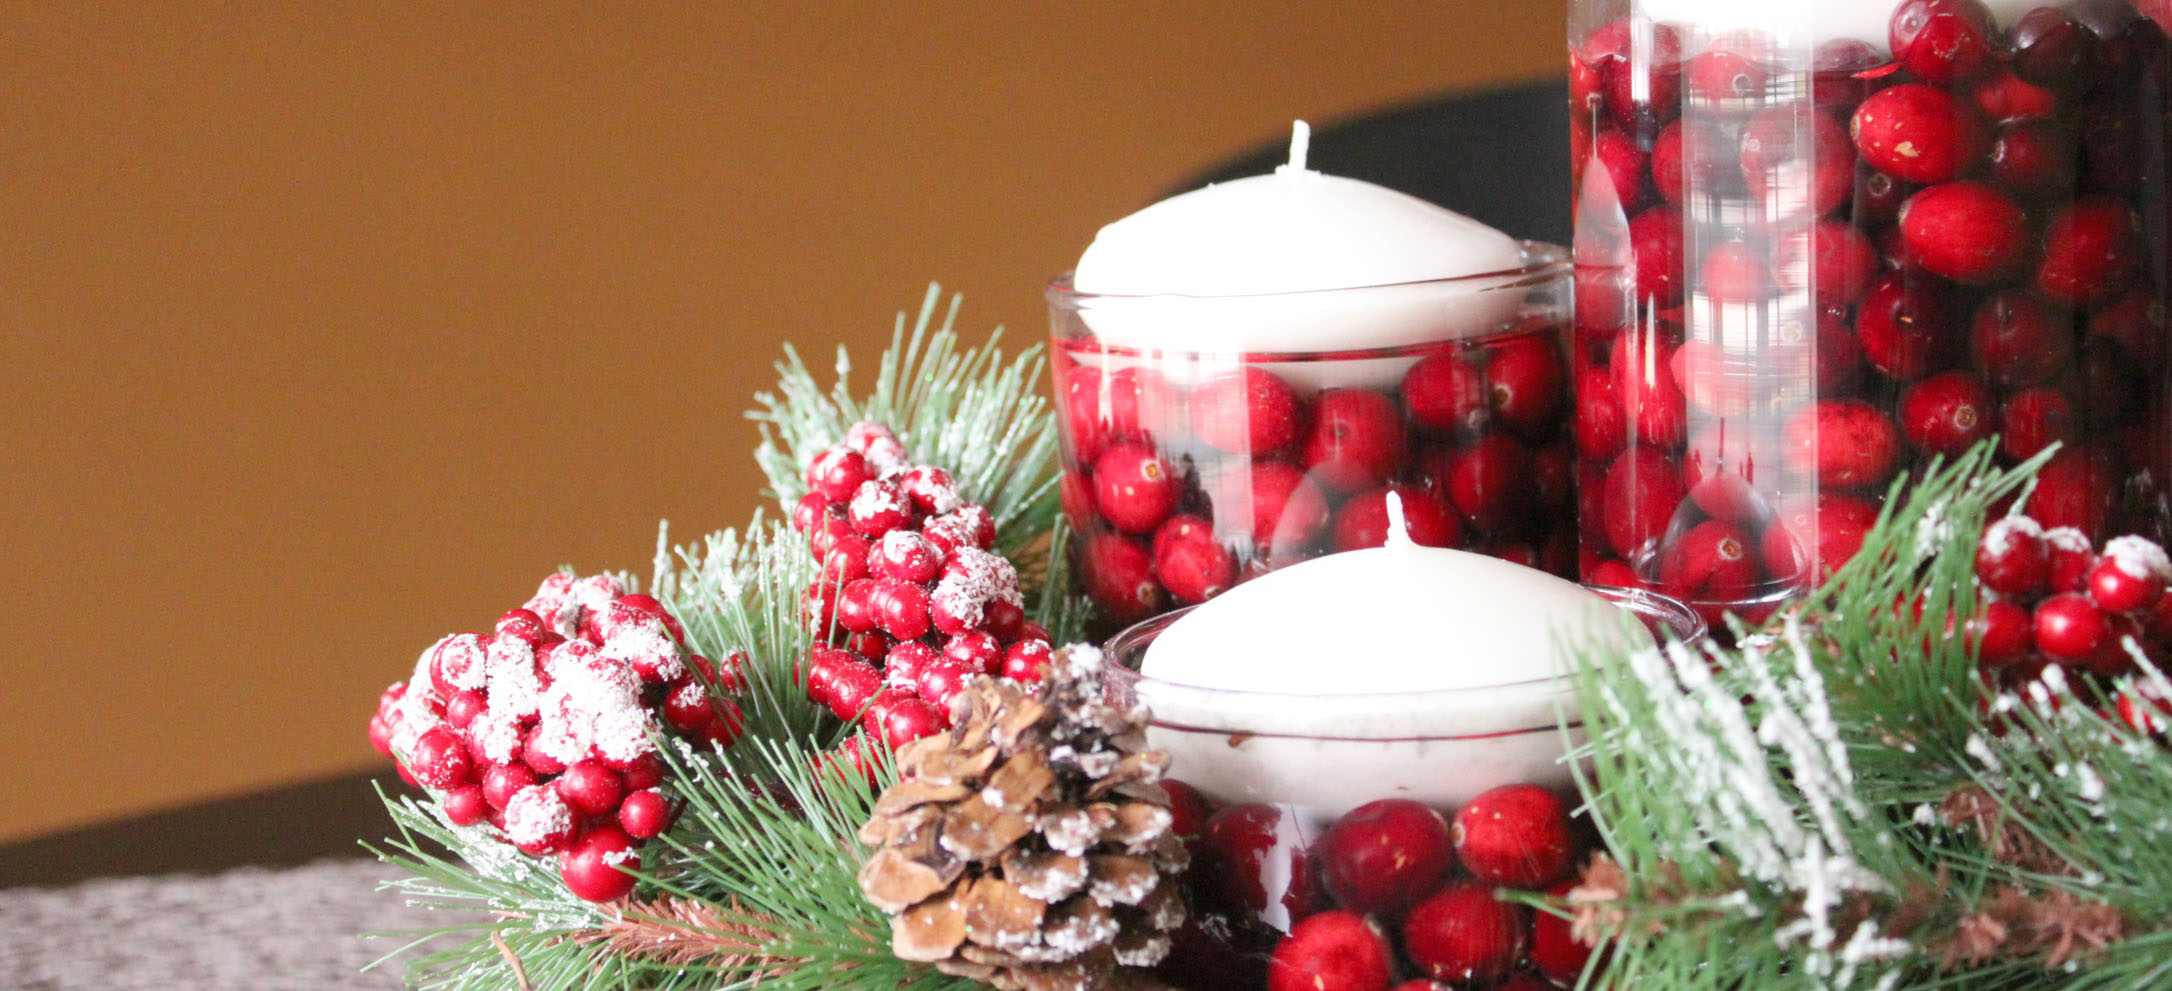 Diy Christmas Decorations Diy Christmas Decorations Christmas Decorations Diy Diy